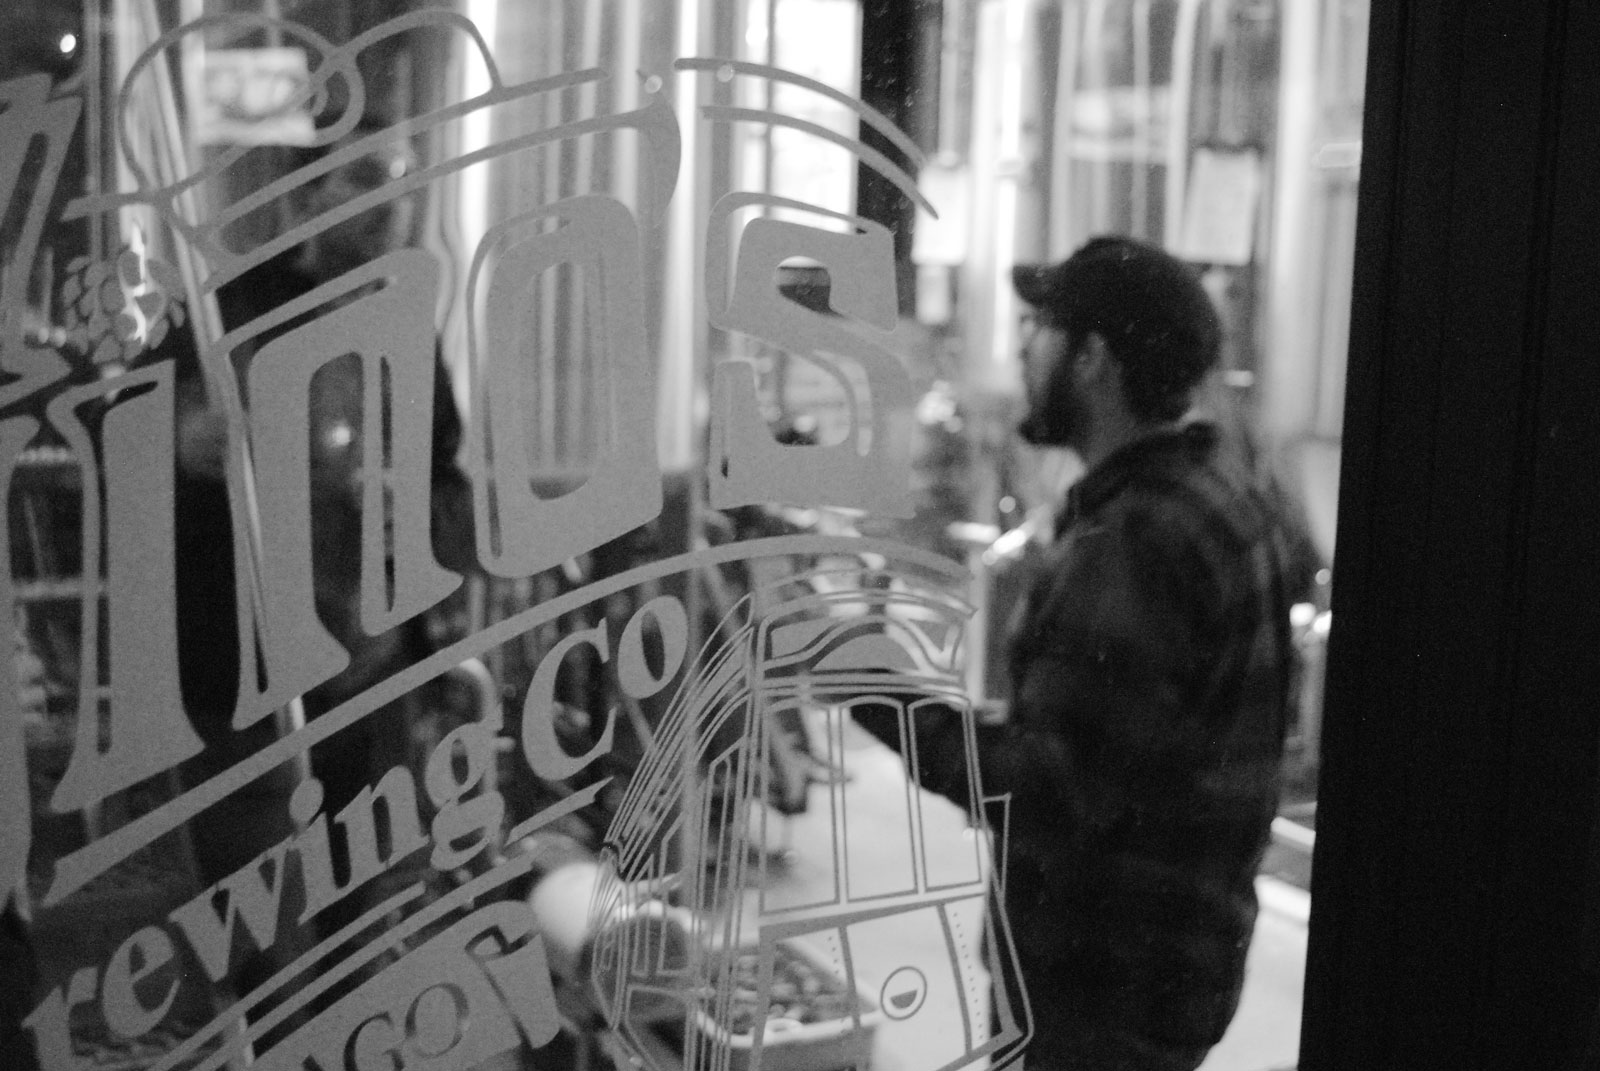 Changing Perceptions with Gino's Brewing Co.